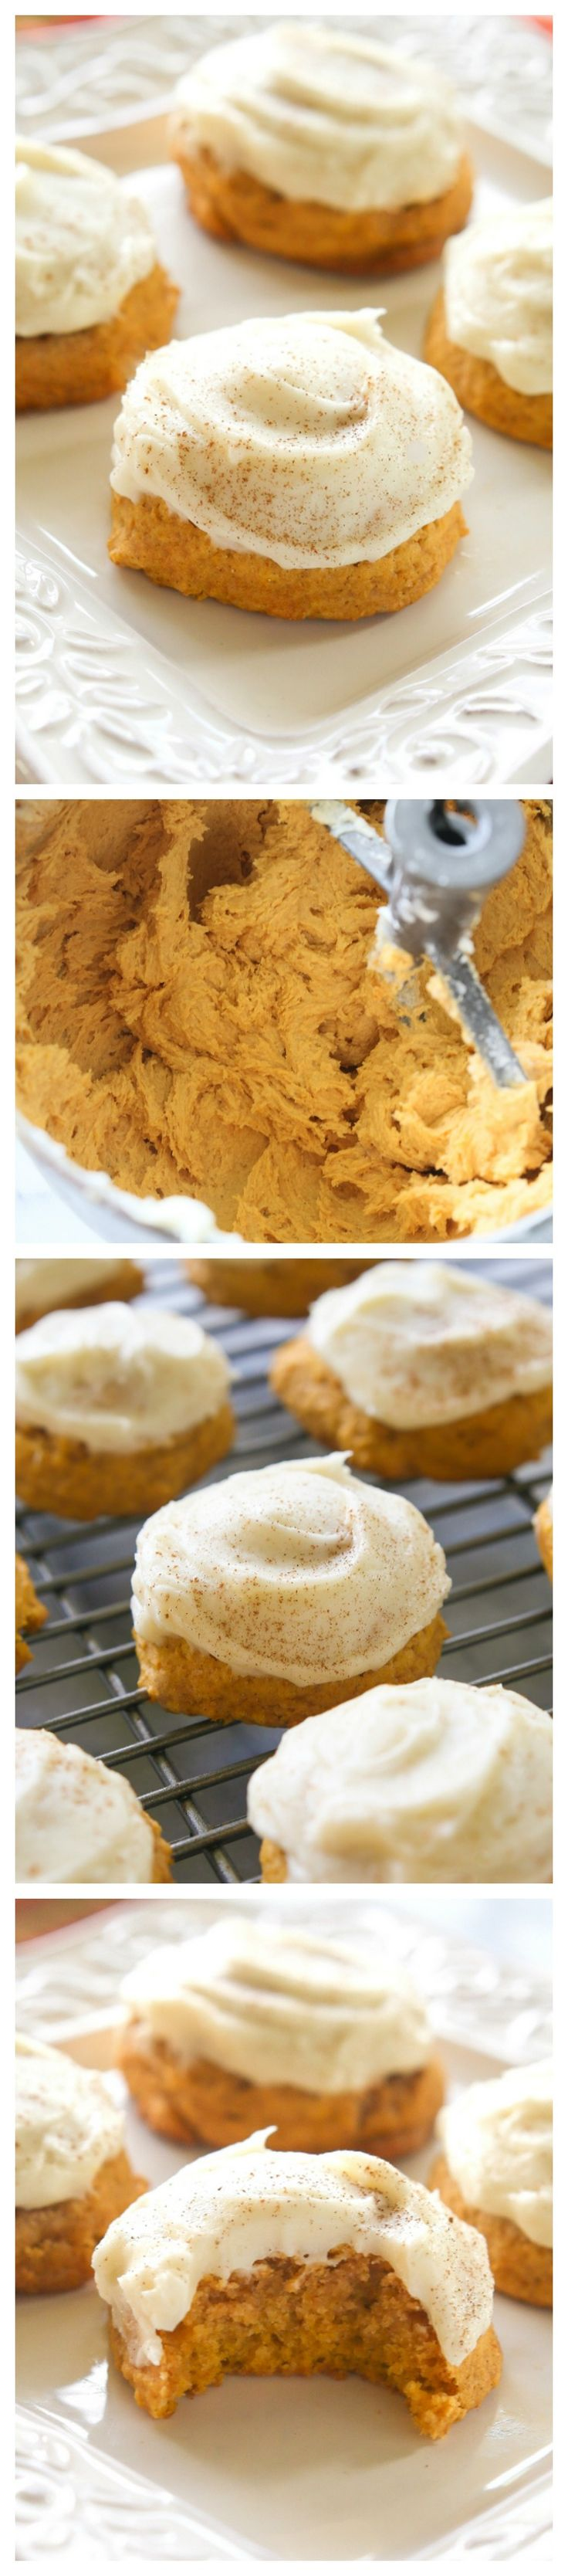 Pumpkin Cookies - melt in your mouth cookies with cream cheese frosting. the-girl-who-ate-everything.com